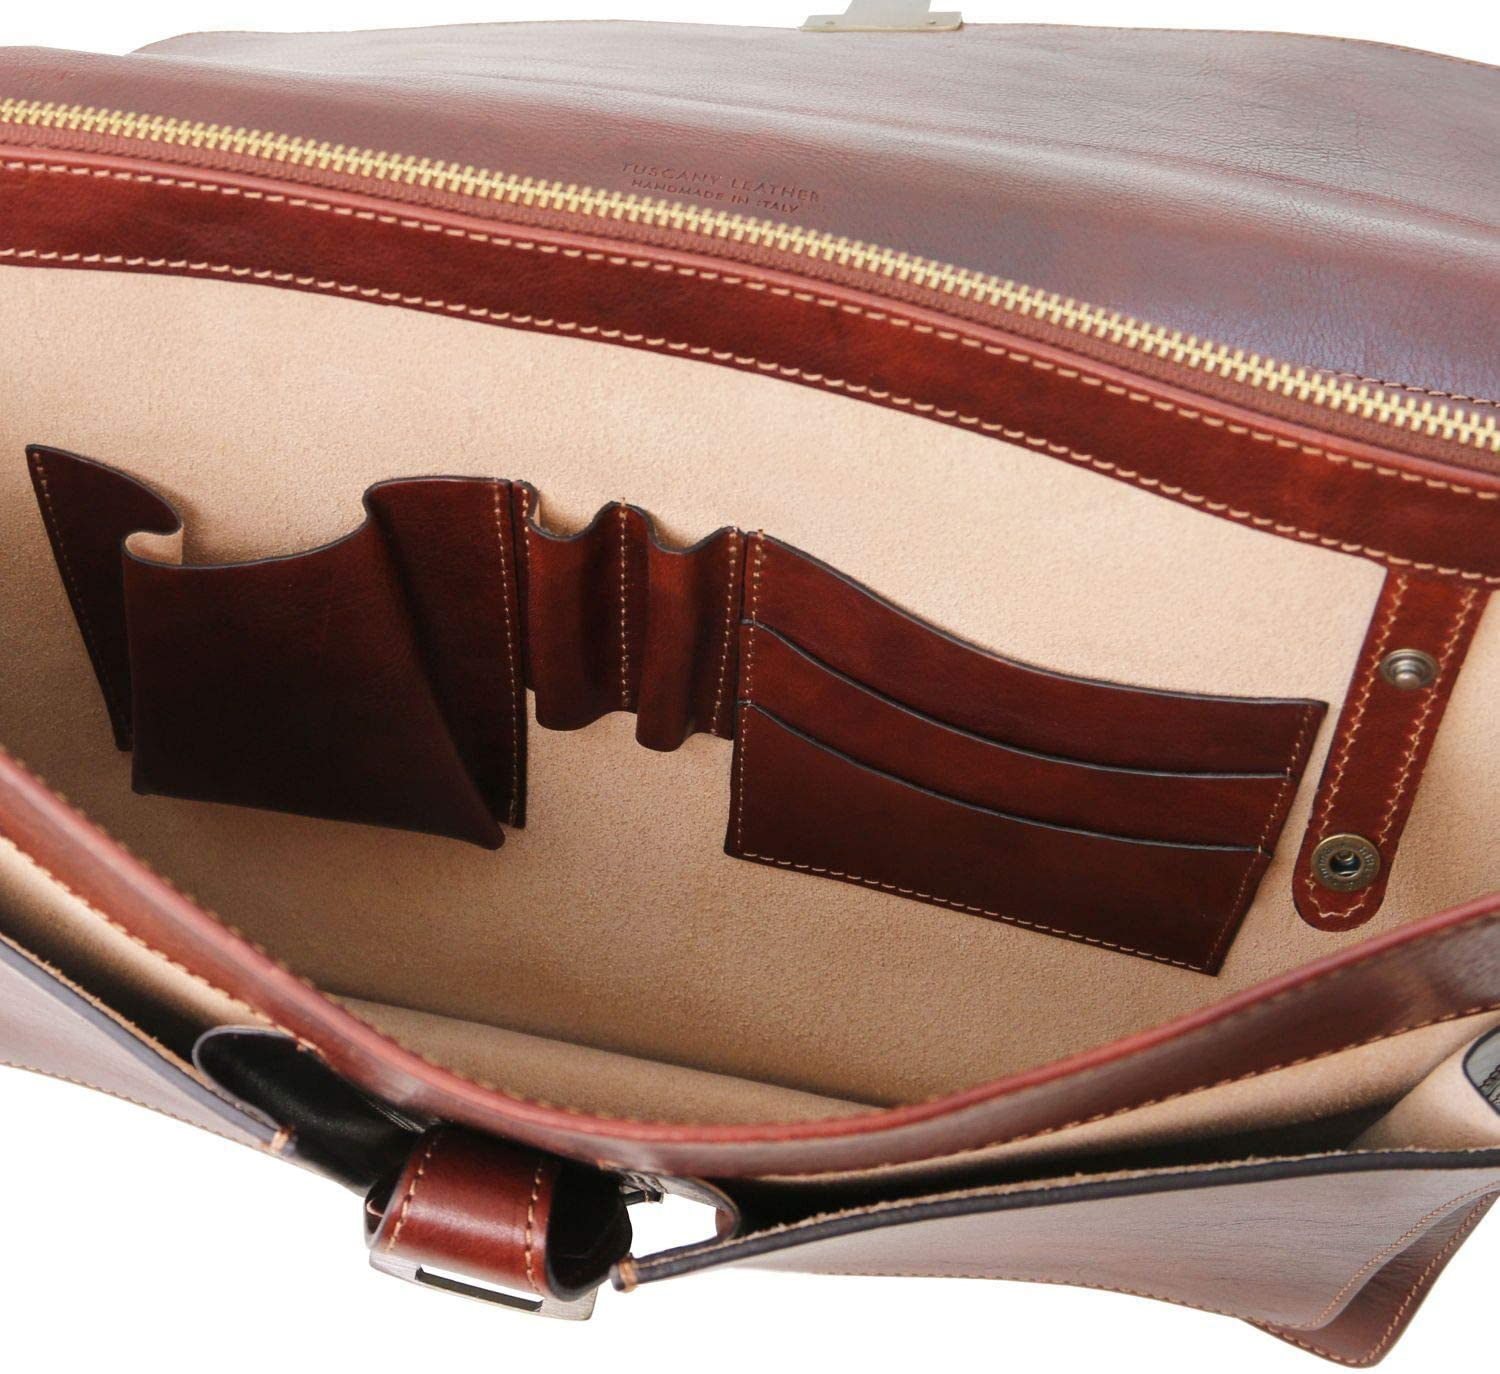 Tuscany Leather Assisi Leather briefcase 3 compartments Honey